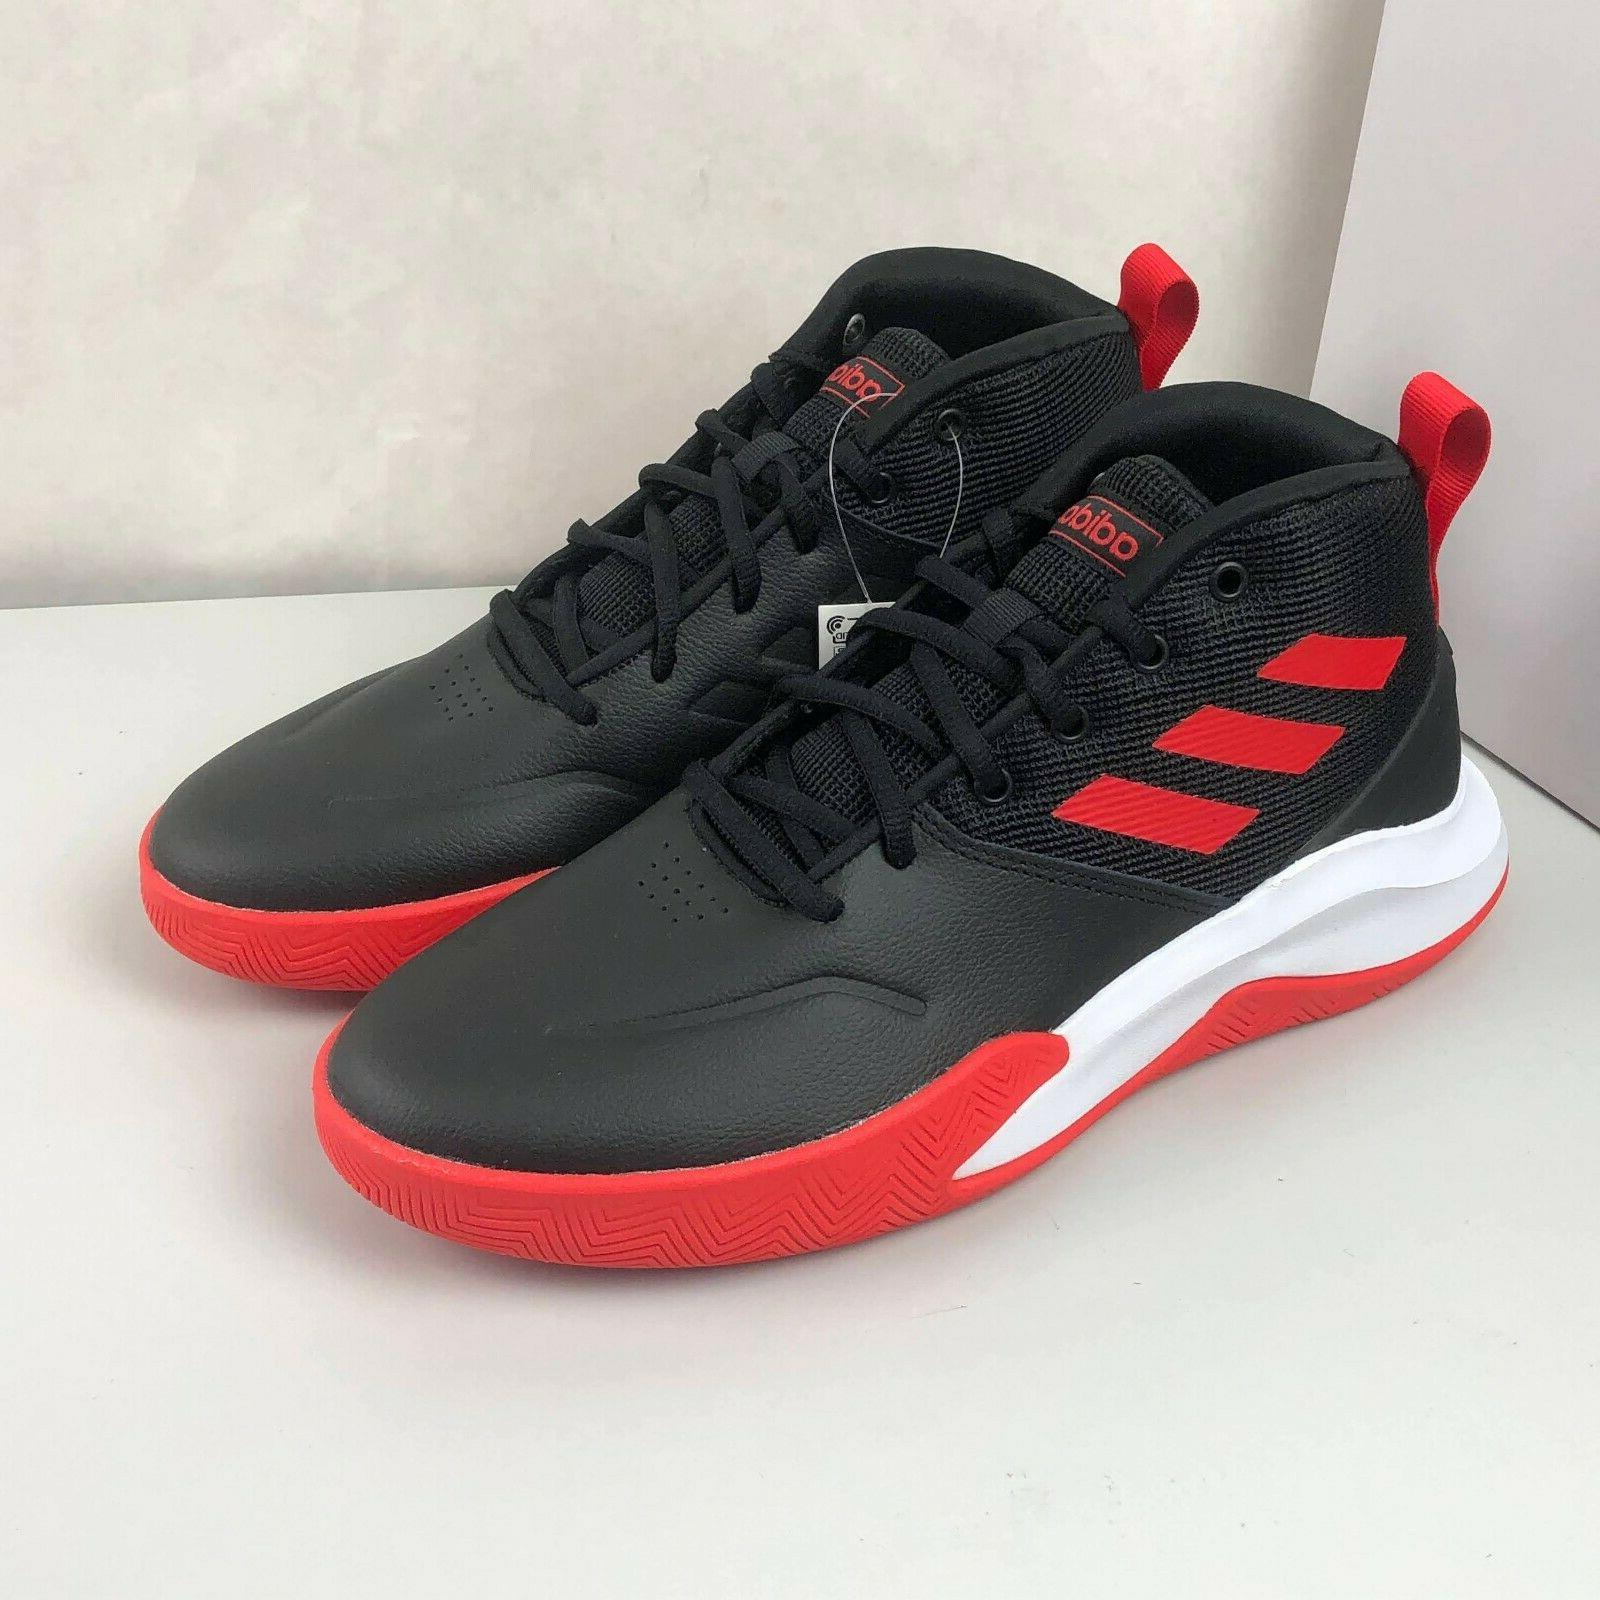 size 8 5 wide men s ownthegame